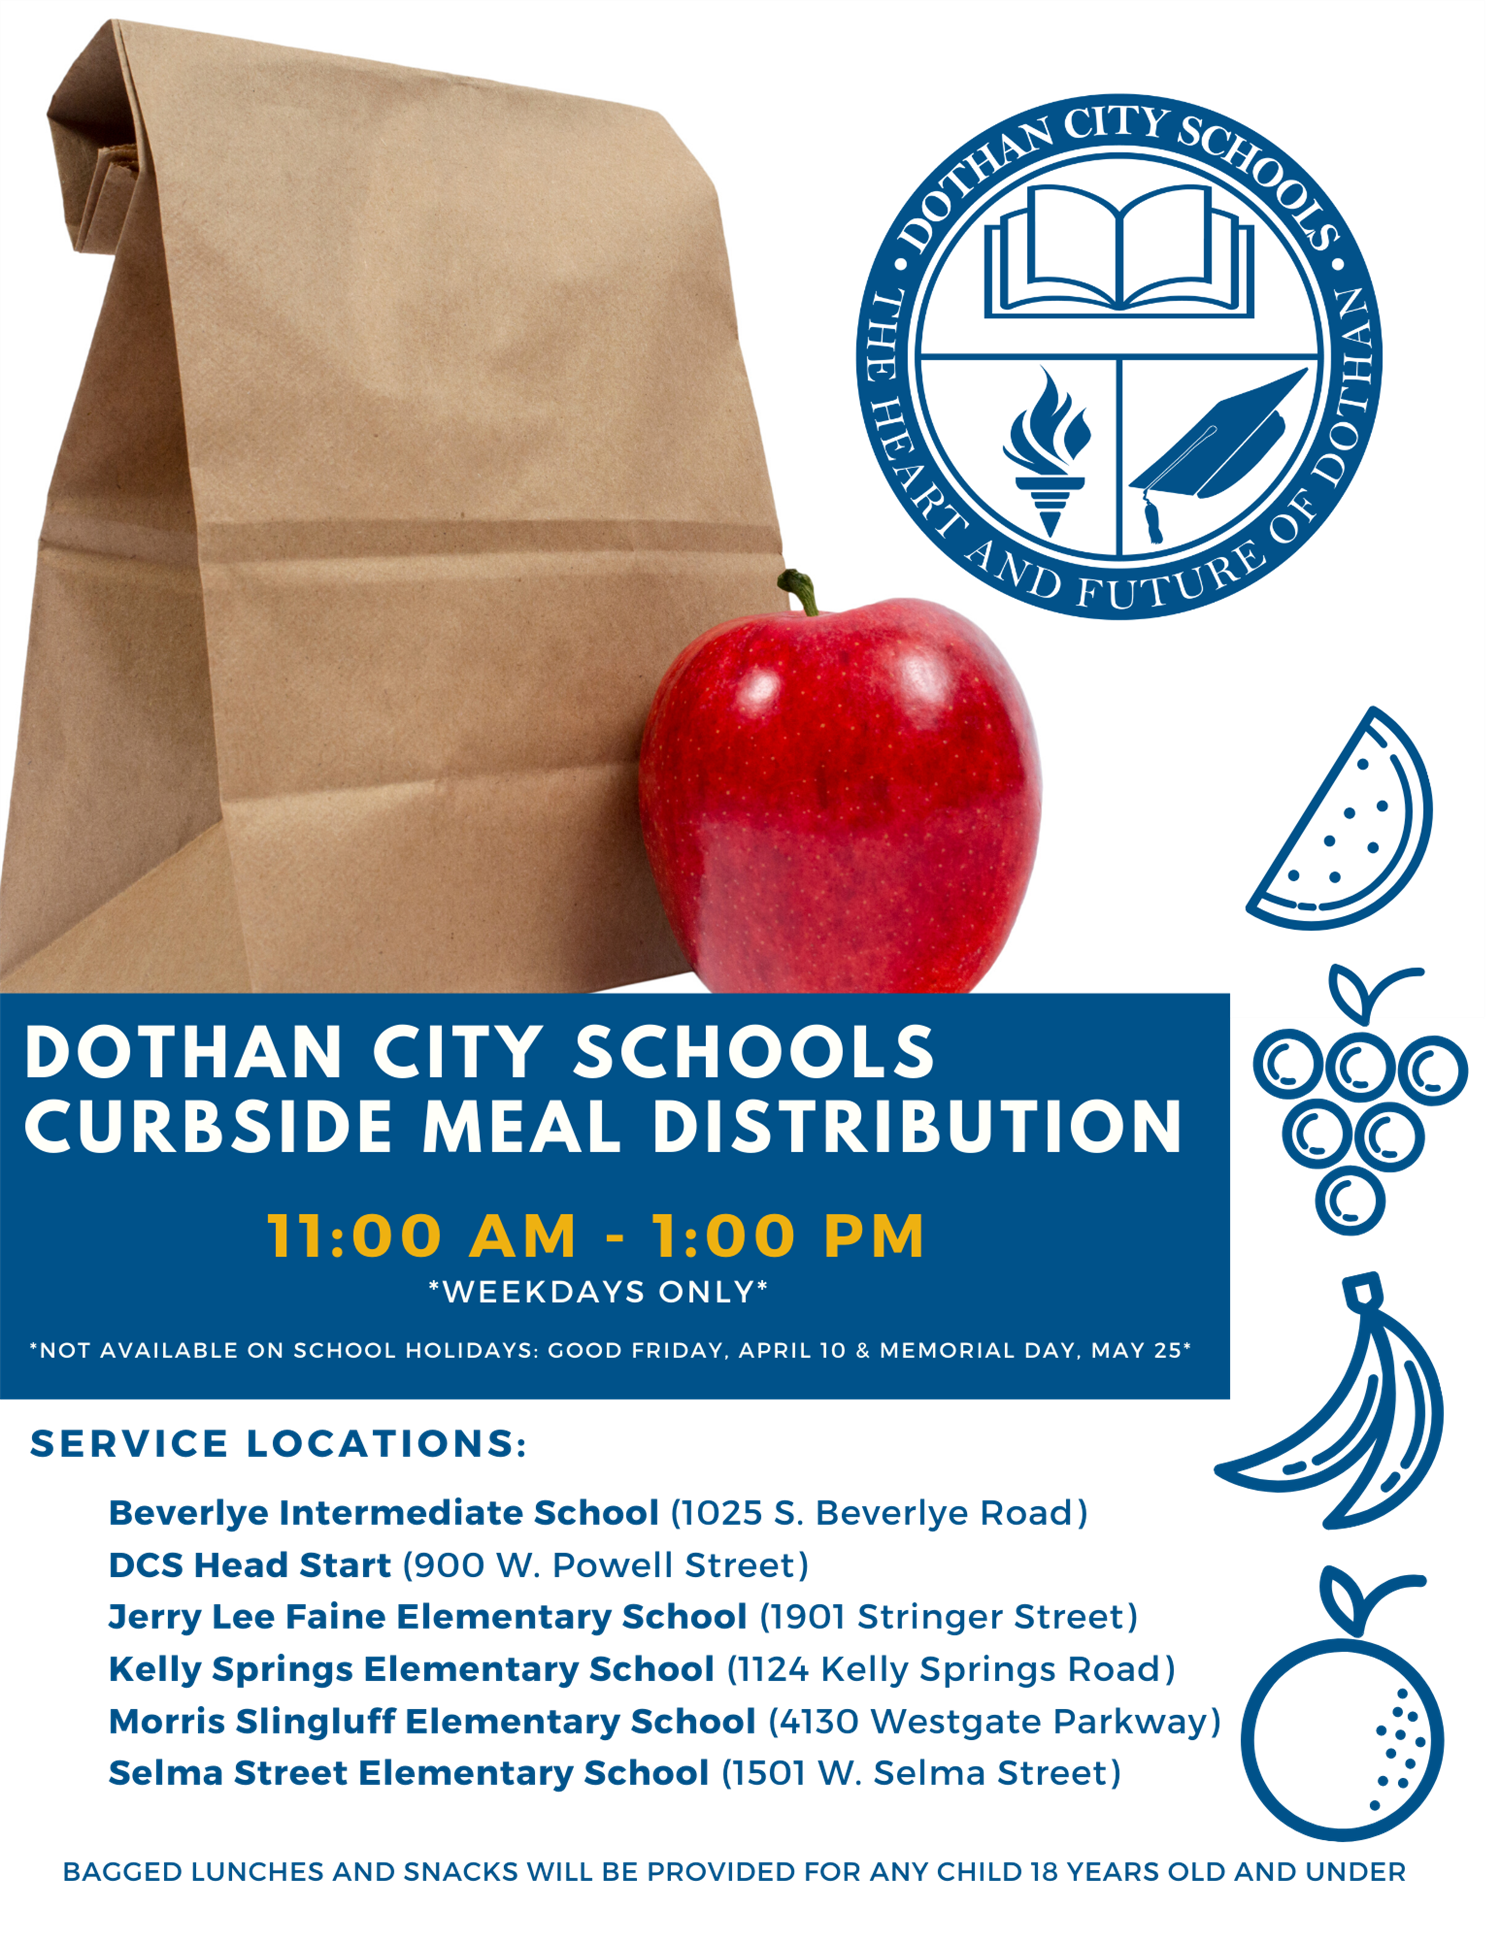 Dothan City Schools' Curbside Meal Distribution Program